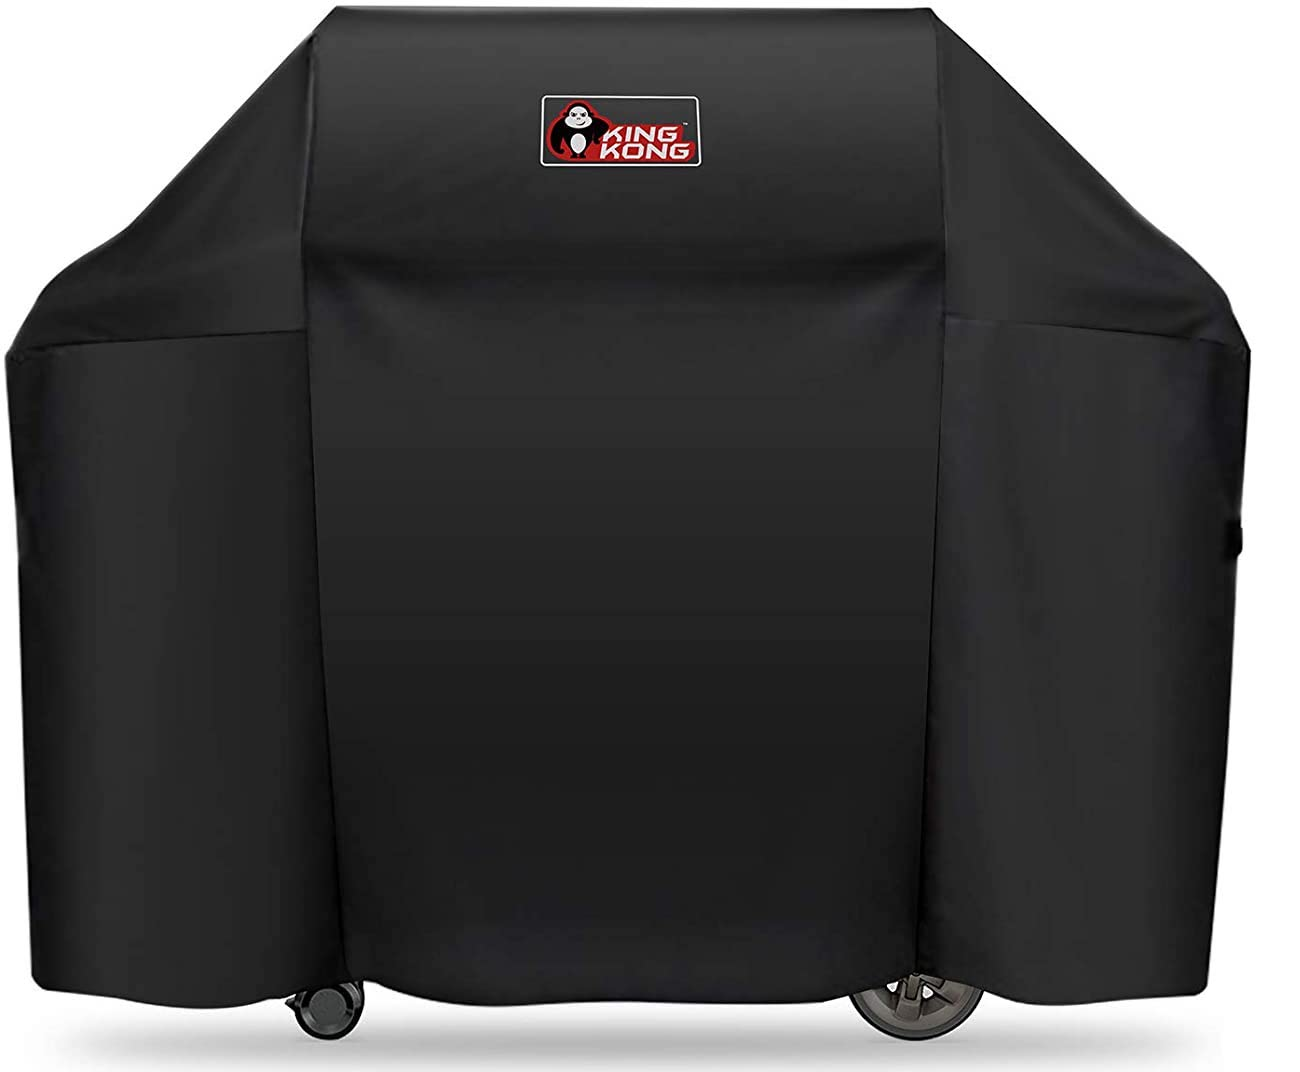 A grill cover for the big boys- KingKong